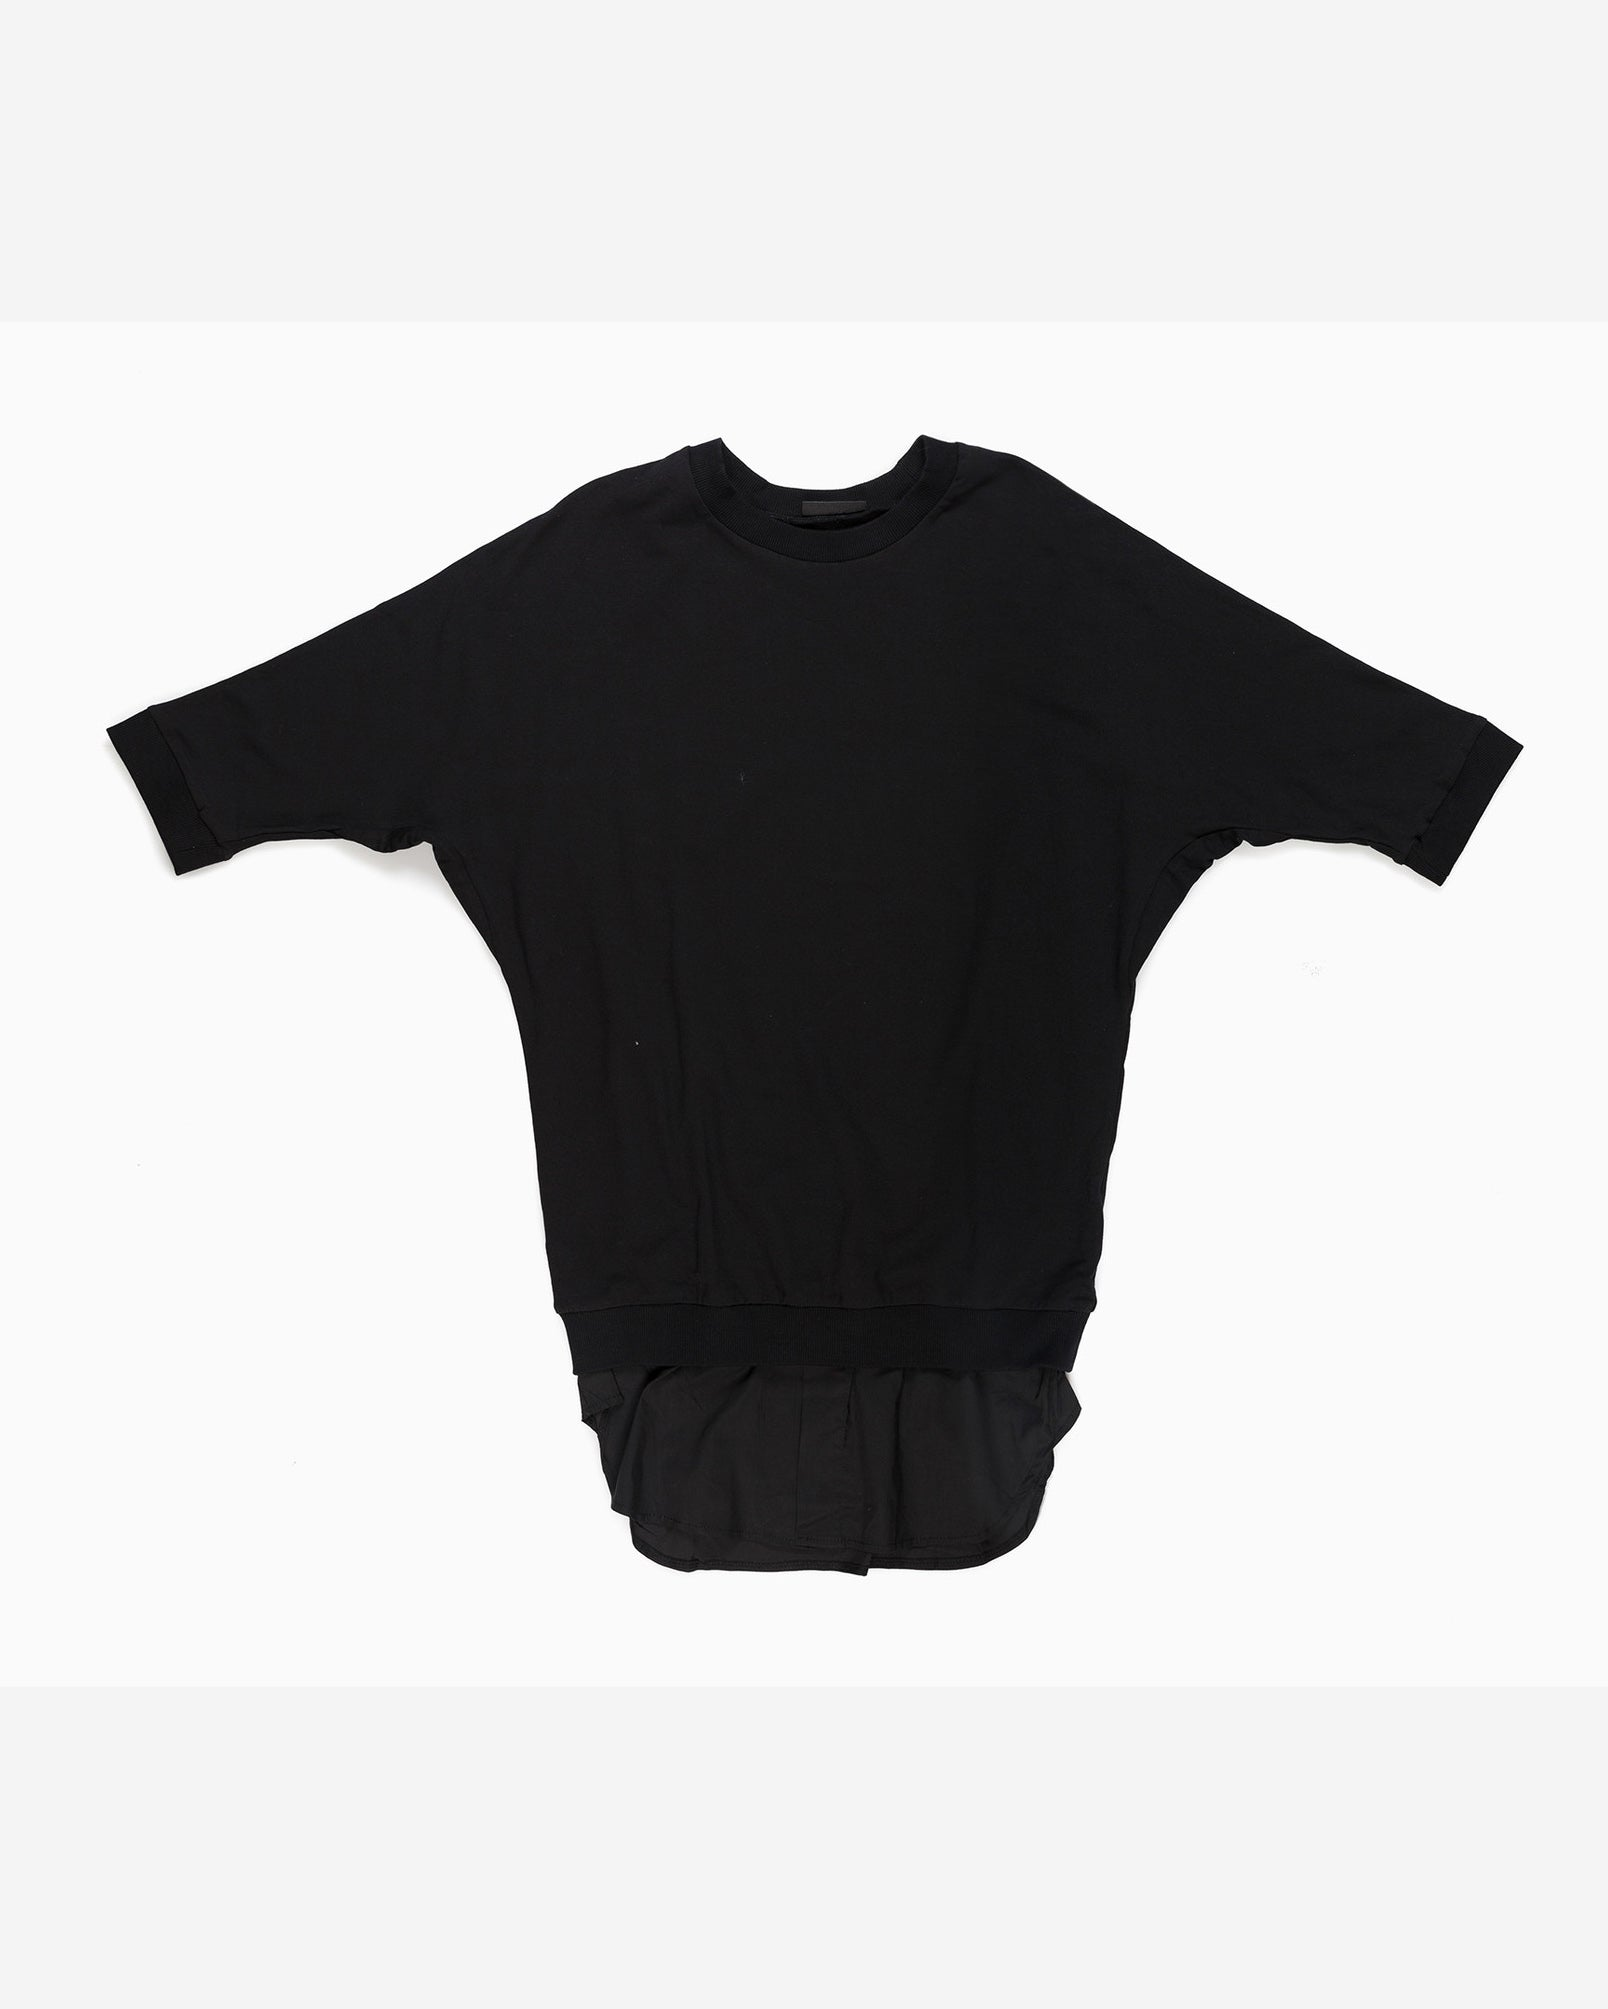 Kosumi Short Sleeve Sweatshirt (Black)